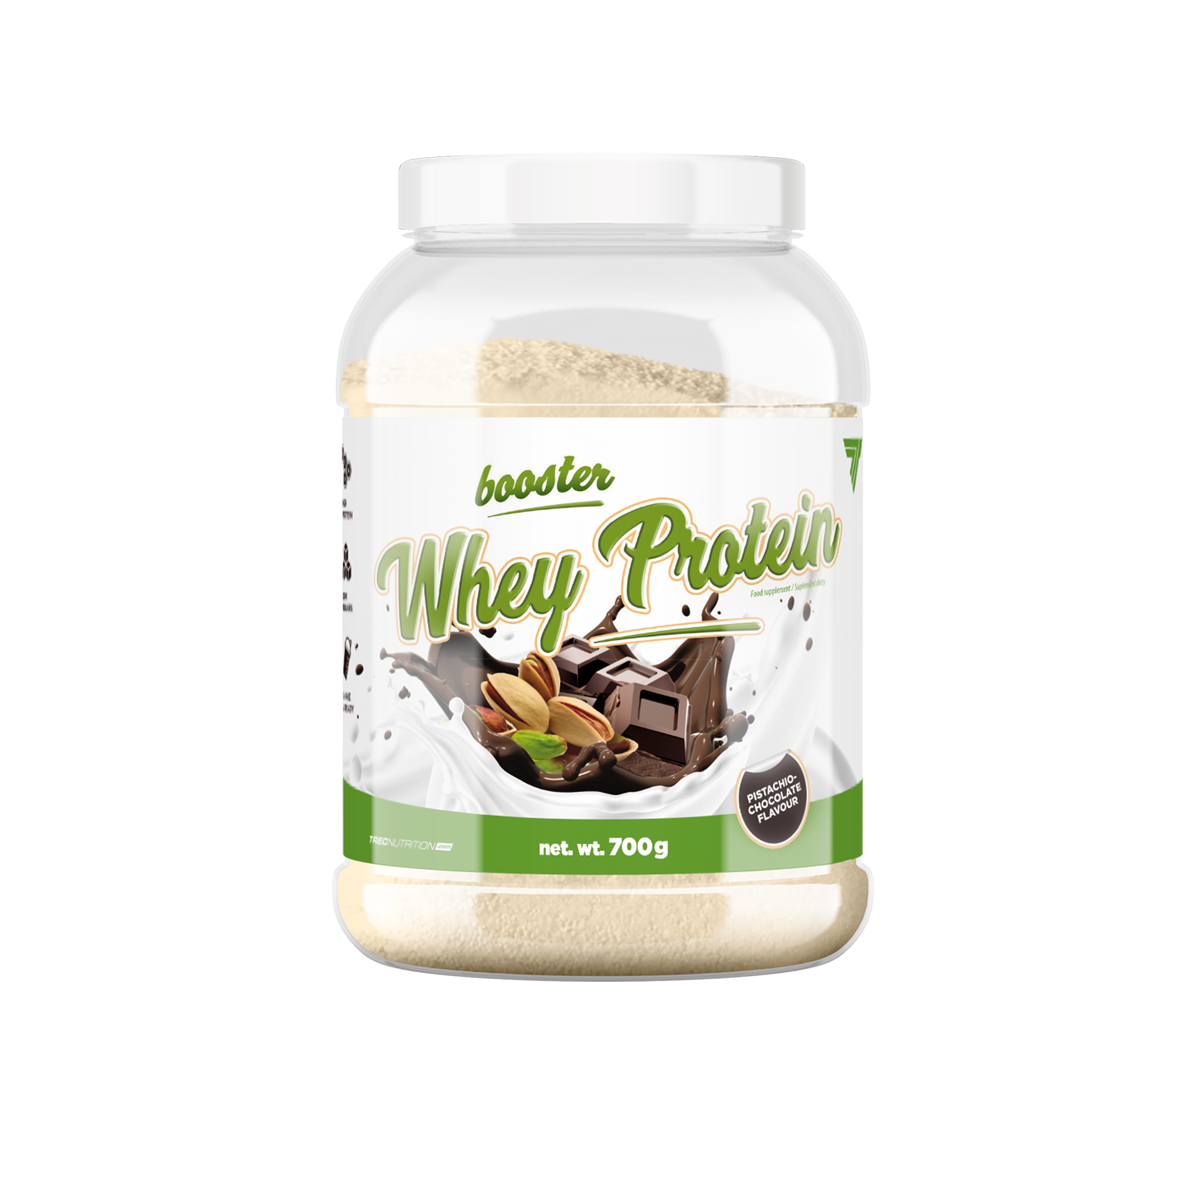 BOOSTER-WHEY-PROTEIN_700g_pistachio_chocolate